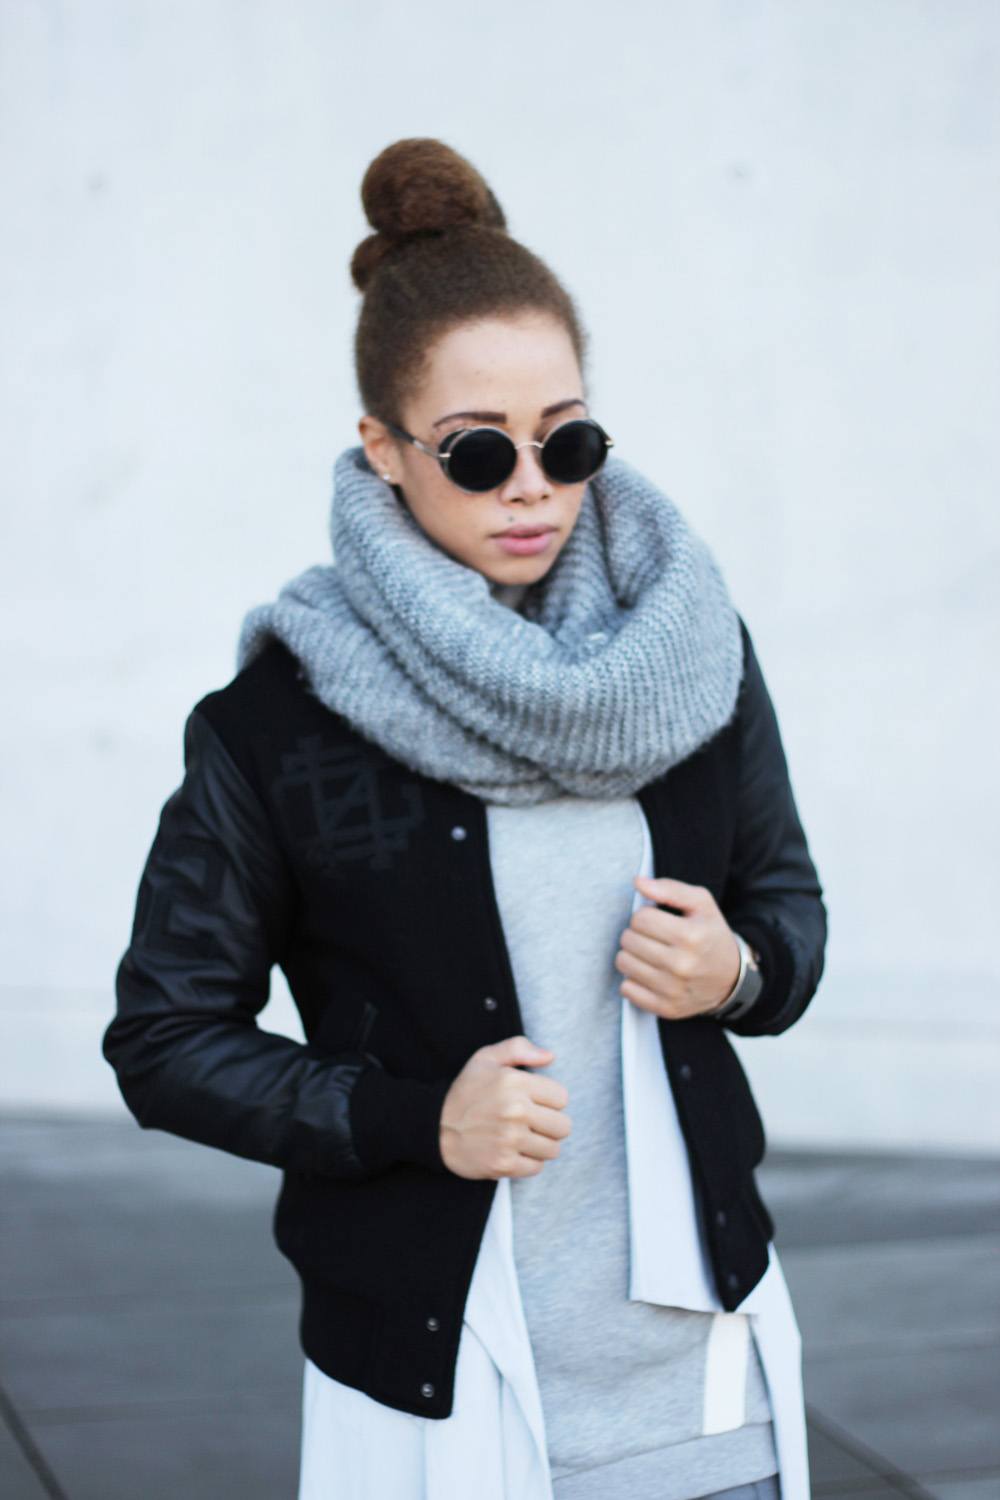 fatimayarie-grey-scarf-bomberjacket-collegesweater-retro-pilotglasses-img_6238